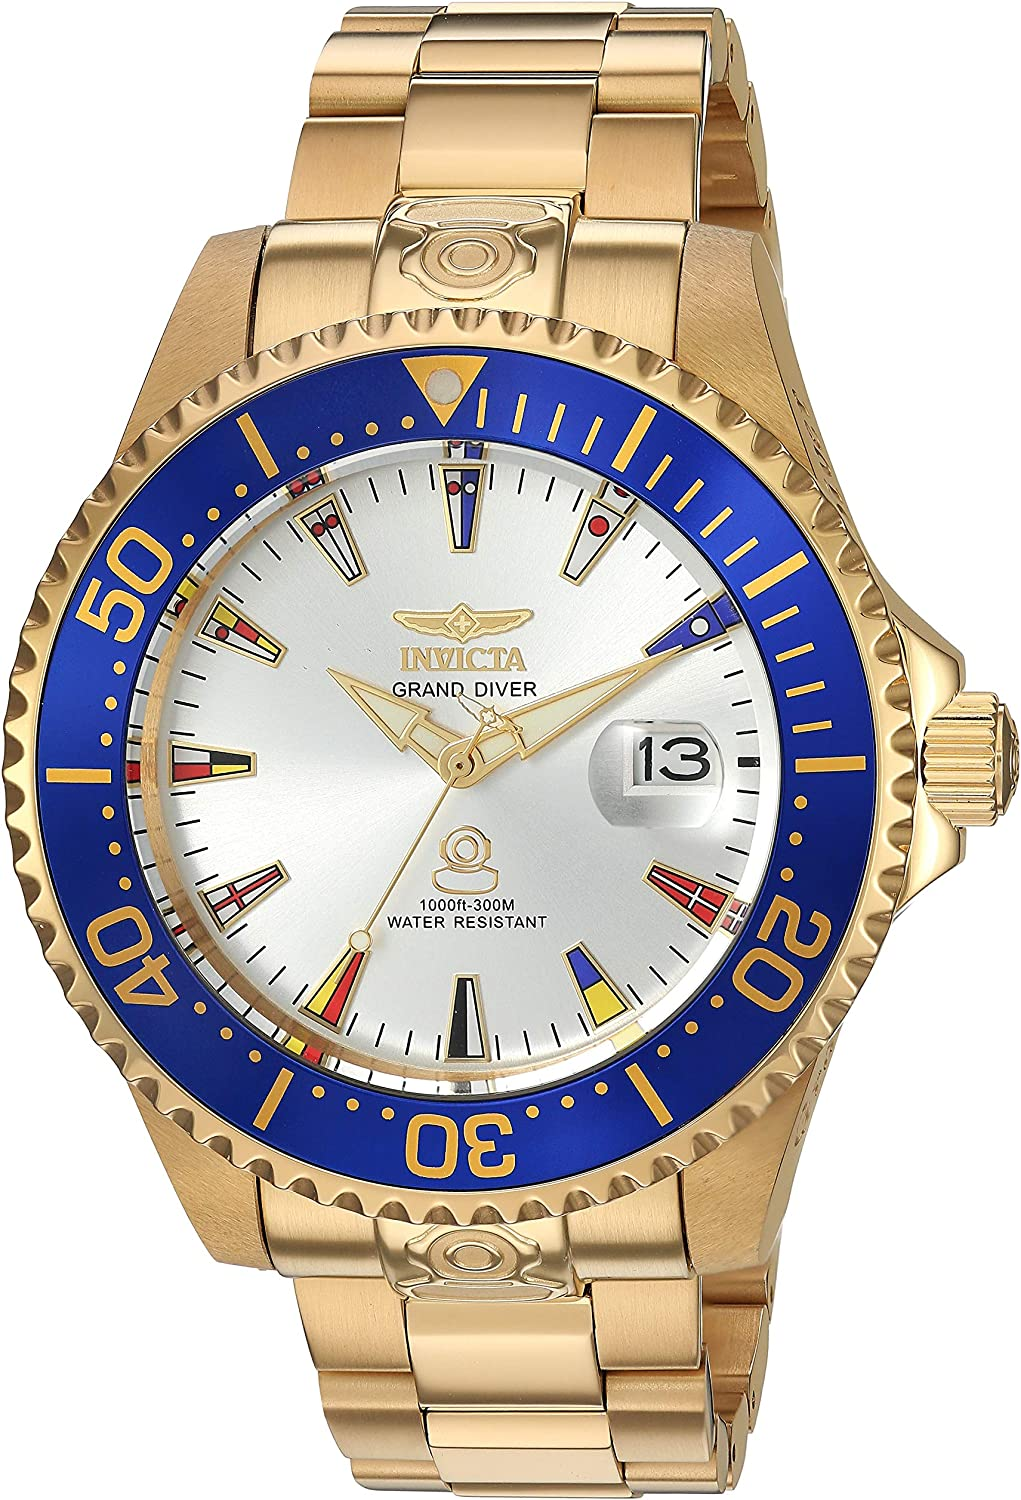 Invicta Men s Grand Pro Diver Automatic-self-Wind Watch with Stainless-Steel Strap, 22 International Watch